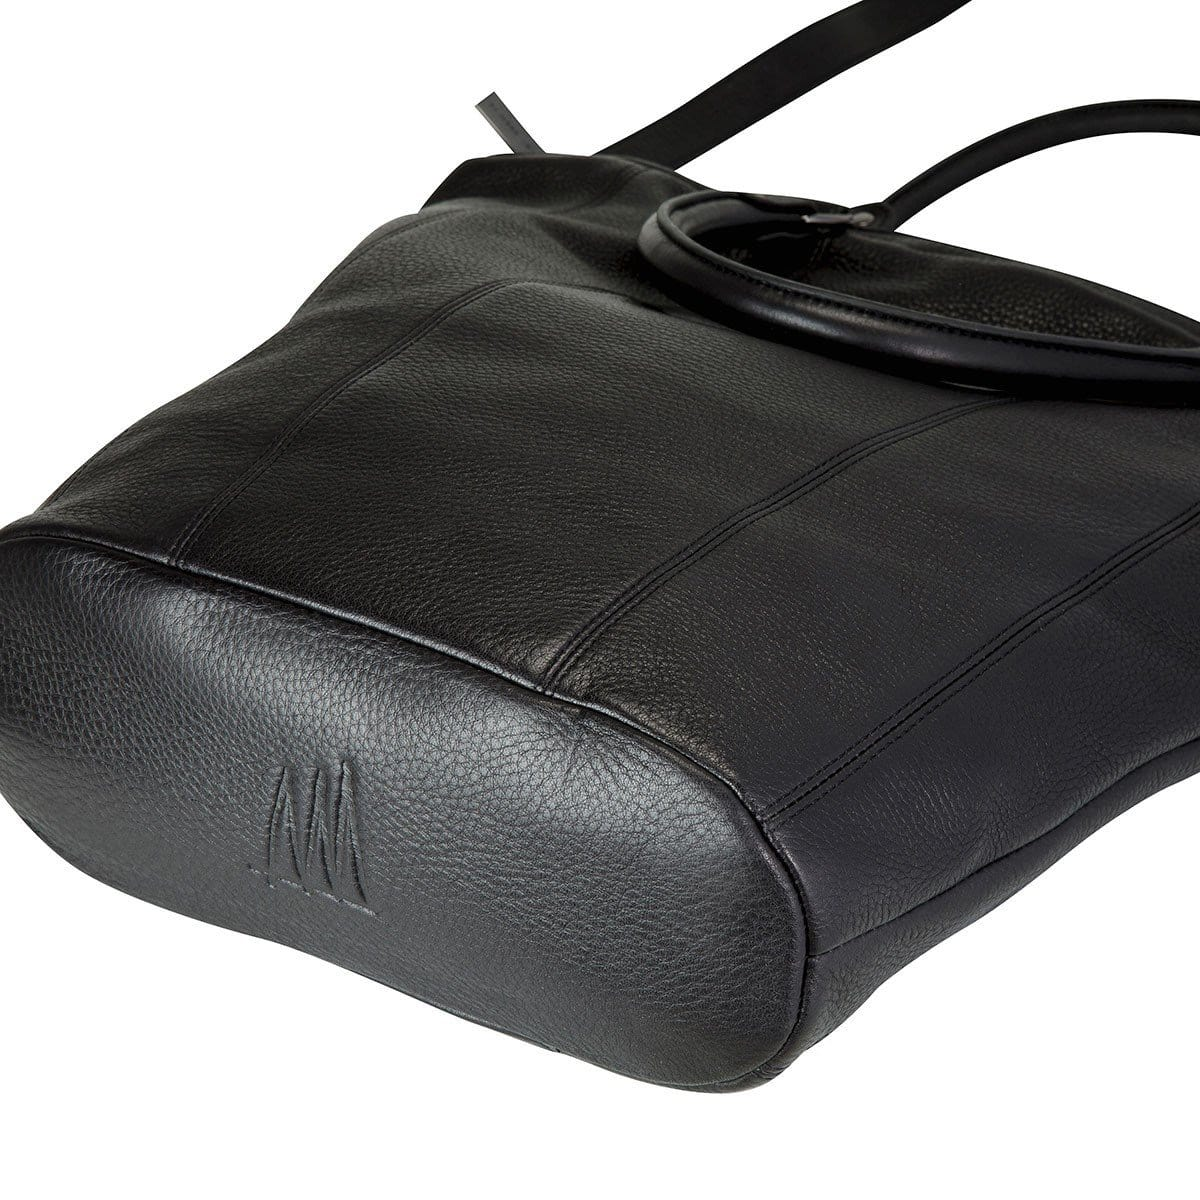 Some Secret Place Bag Black